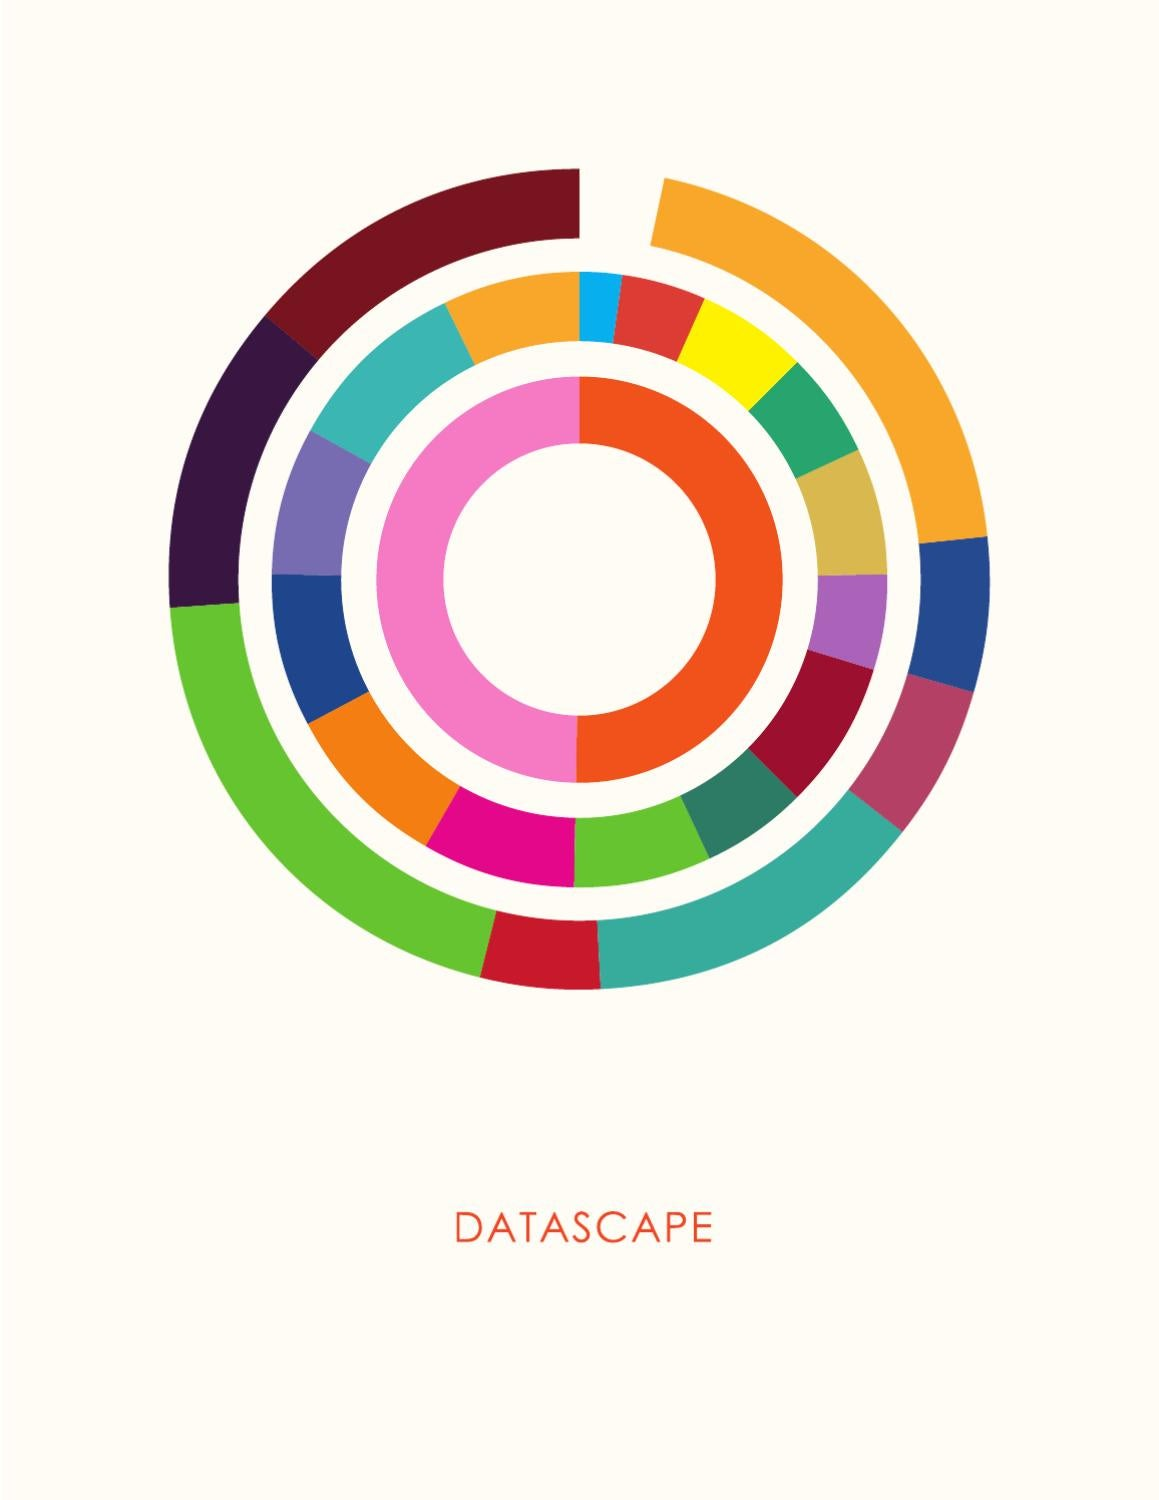 Datascape By The Barstow School Issuu